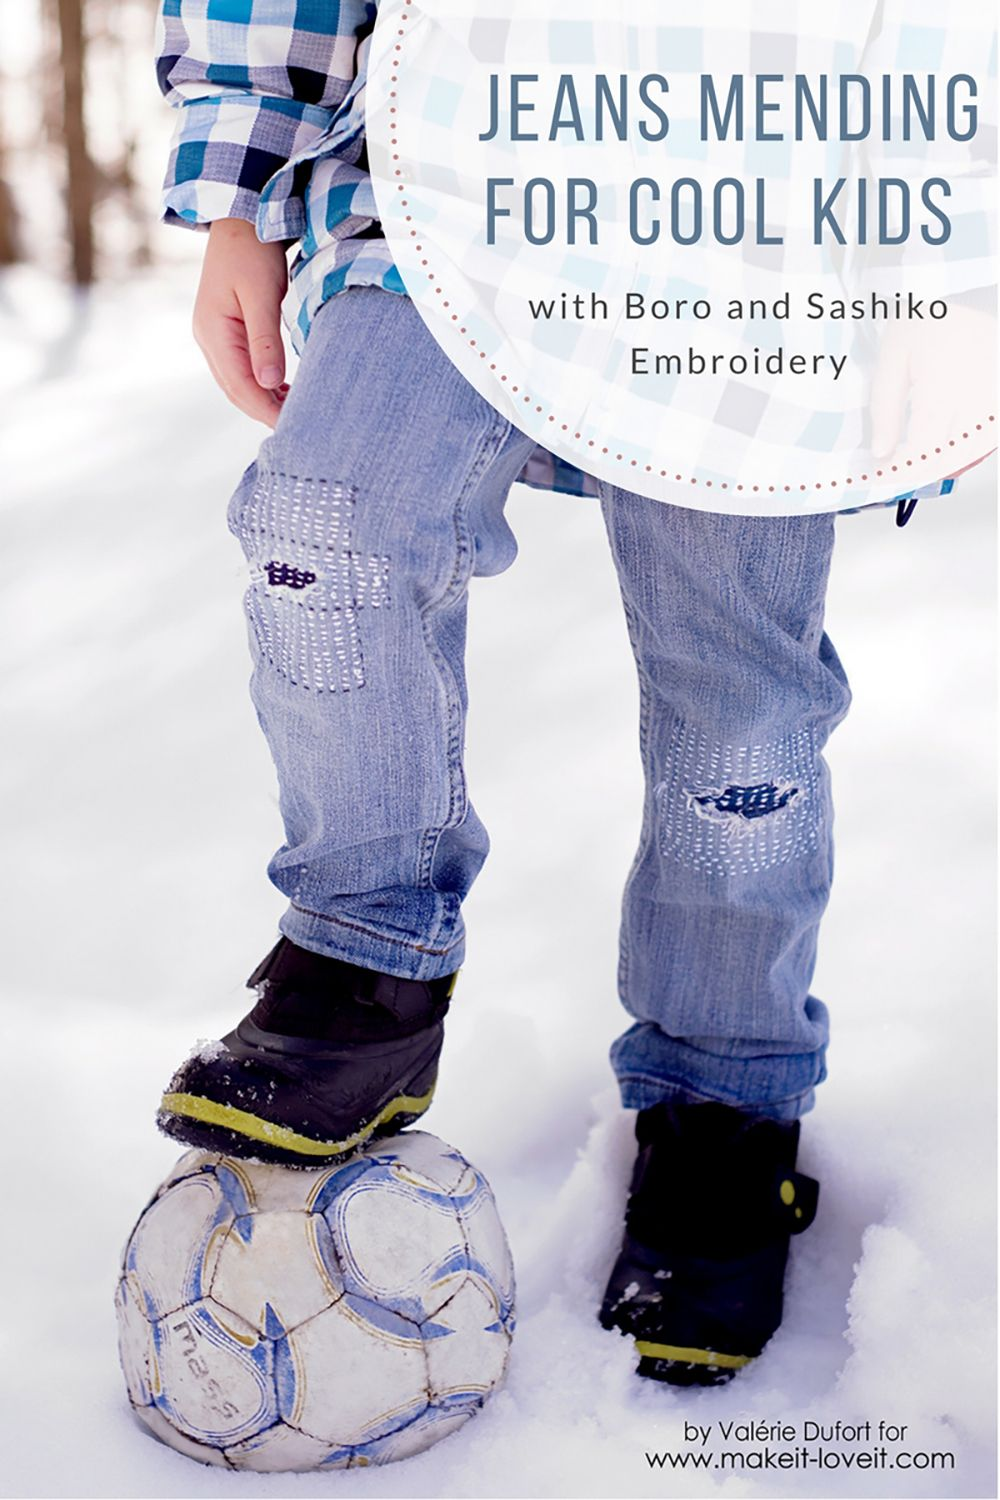 Ever wonder of an approved way of repairing your kids clothes? Let me teach you some Jeans Mending For Cool Kids with Boro and Sashiko Embrodery!